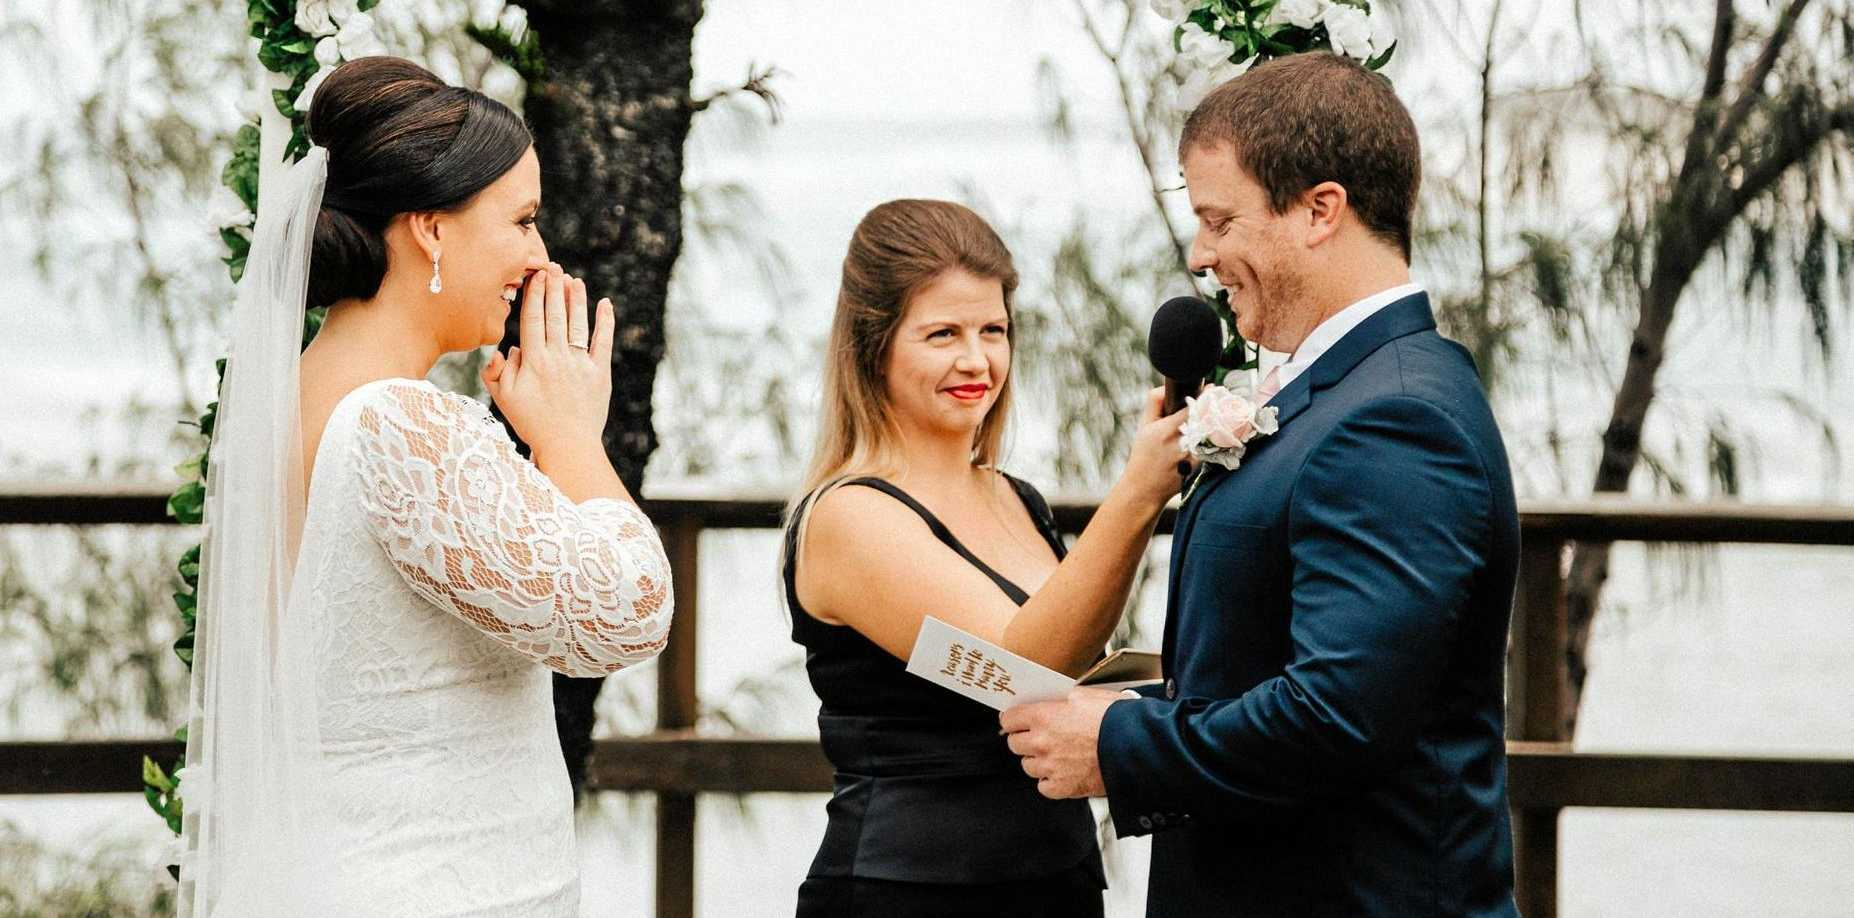 I DO: Alison and Andrew Jagoe were married in April last year at Happy Valley, Caloundra by Fiona Duce and chose to include a statement in their ceremony in support of marriage equality.